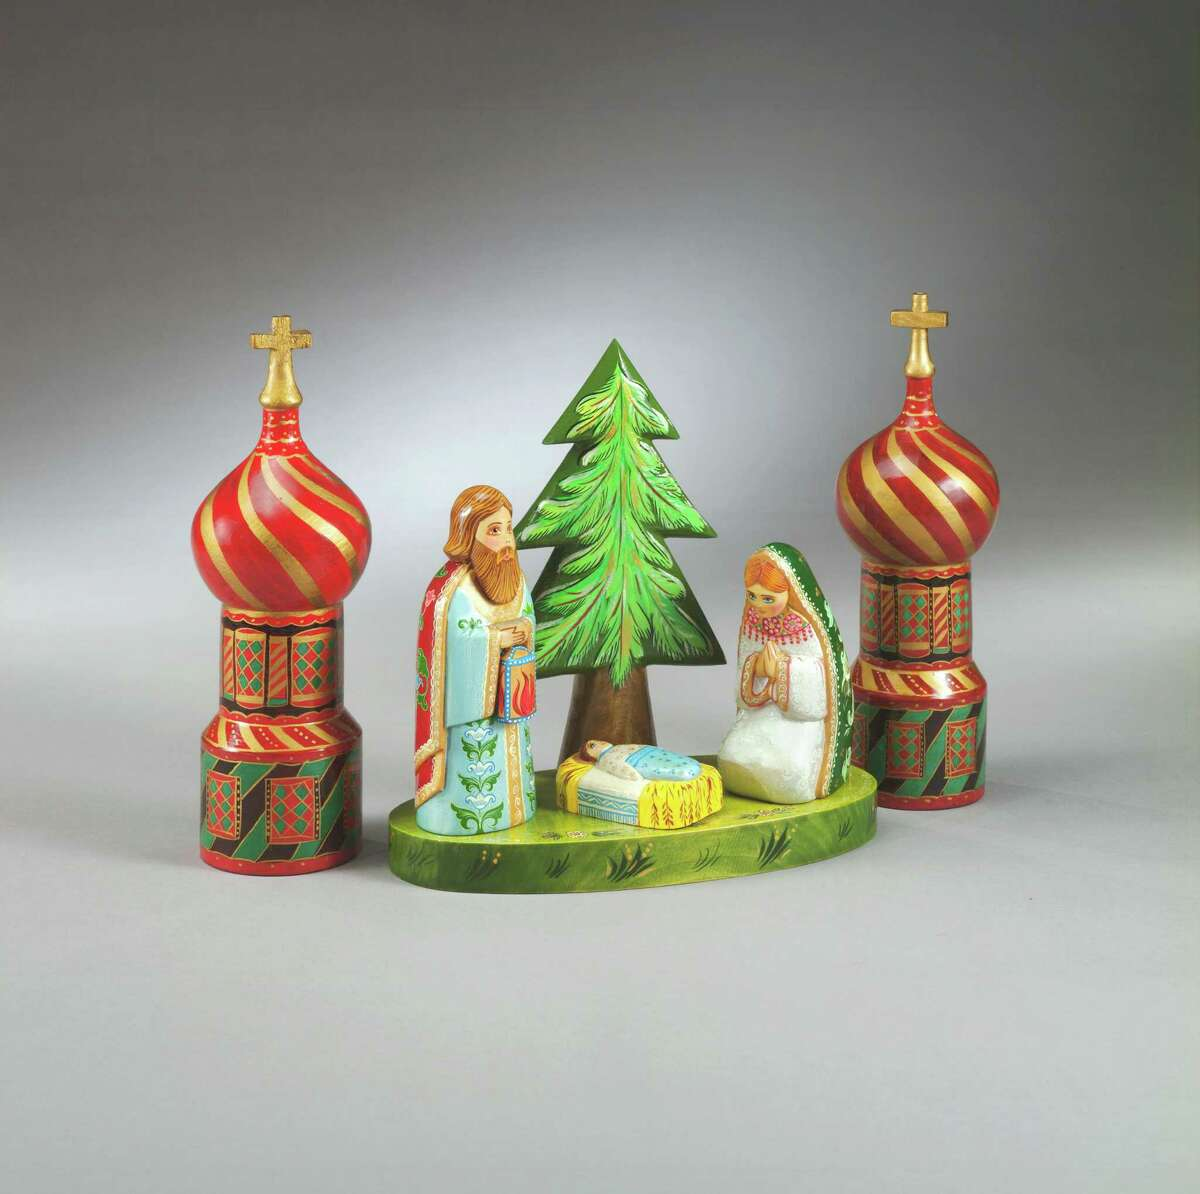 """EUROPEAN CRECHES: """"Figurines, Holy Family"""" from Russia is part of the annual exhibit of """"Christmas in Europe"""" on display at the Knights of Columbus Museum on State Street in New Haven through Feb. 2. Free."""